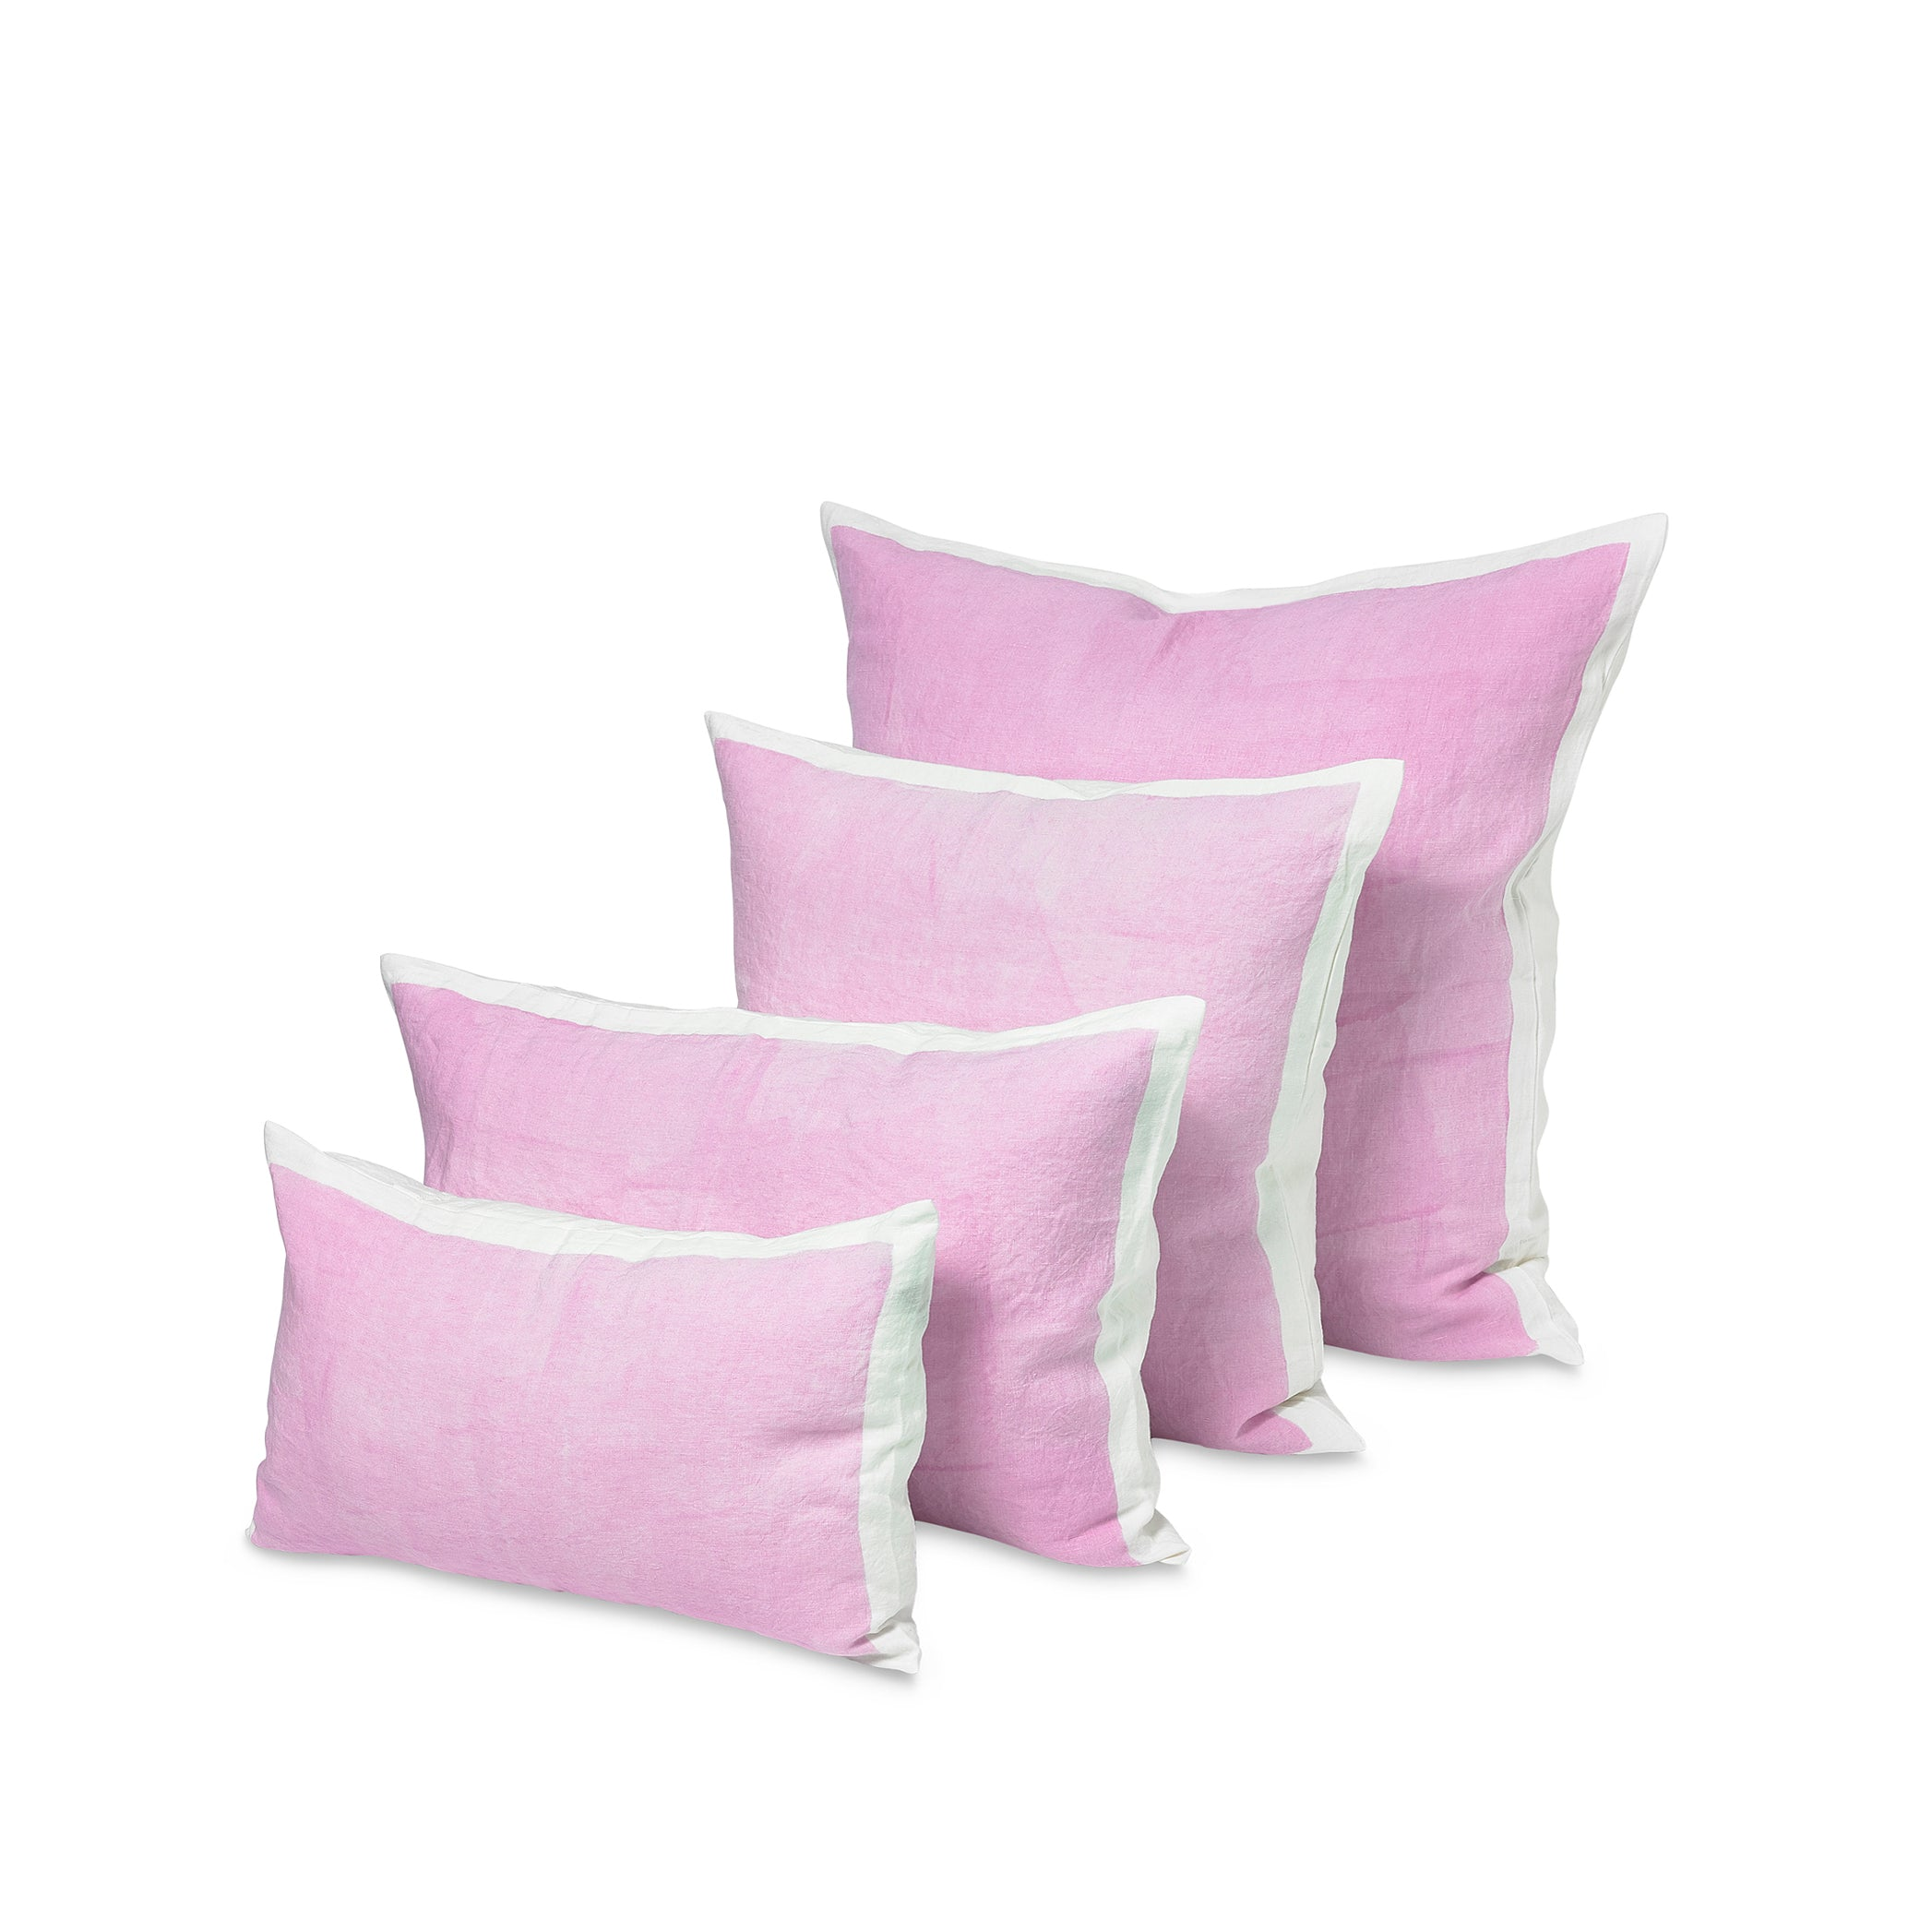 Hand Painted Linen Cushion in Pale Pink, 50cm x 30cm